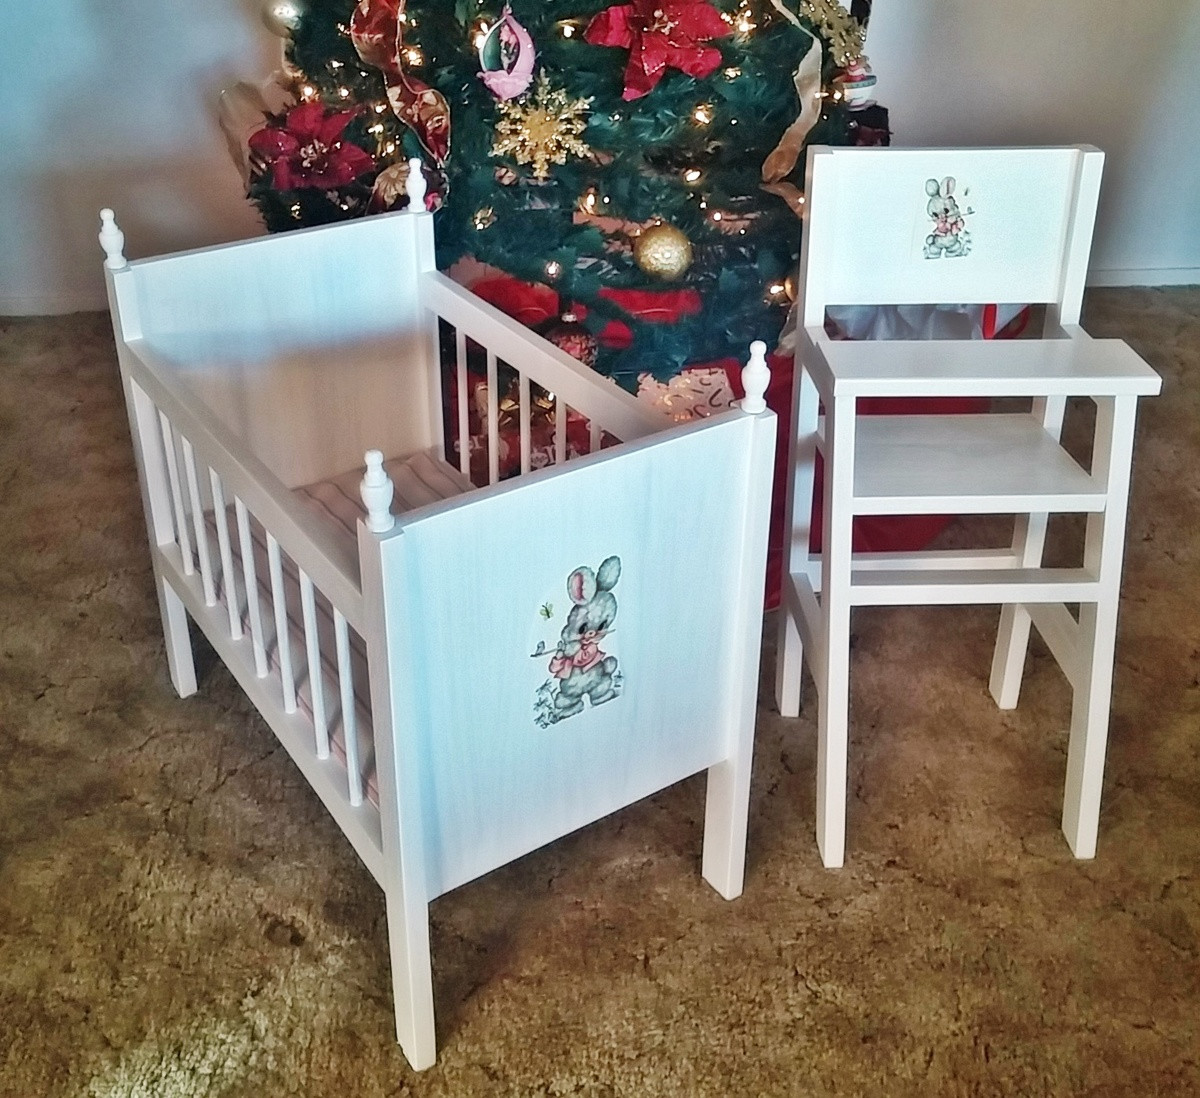 Best ideas about DIY Baby Doll Crib . Save or Pin Ana White Now.